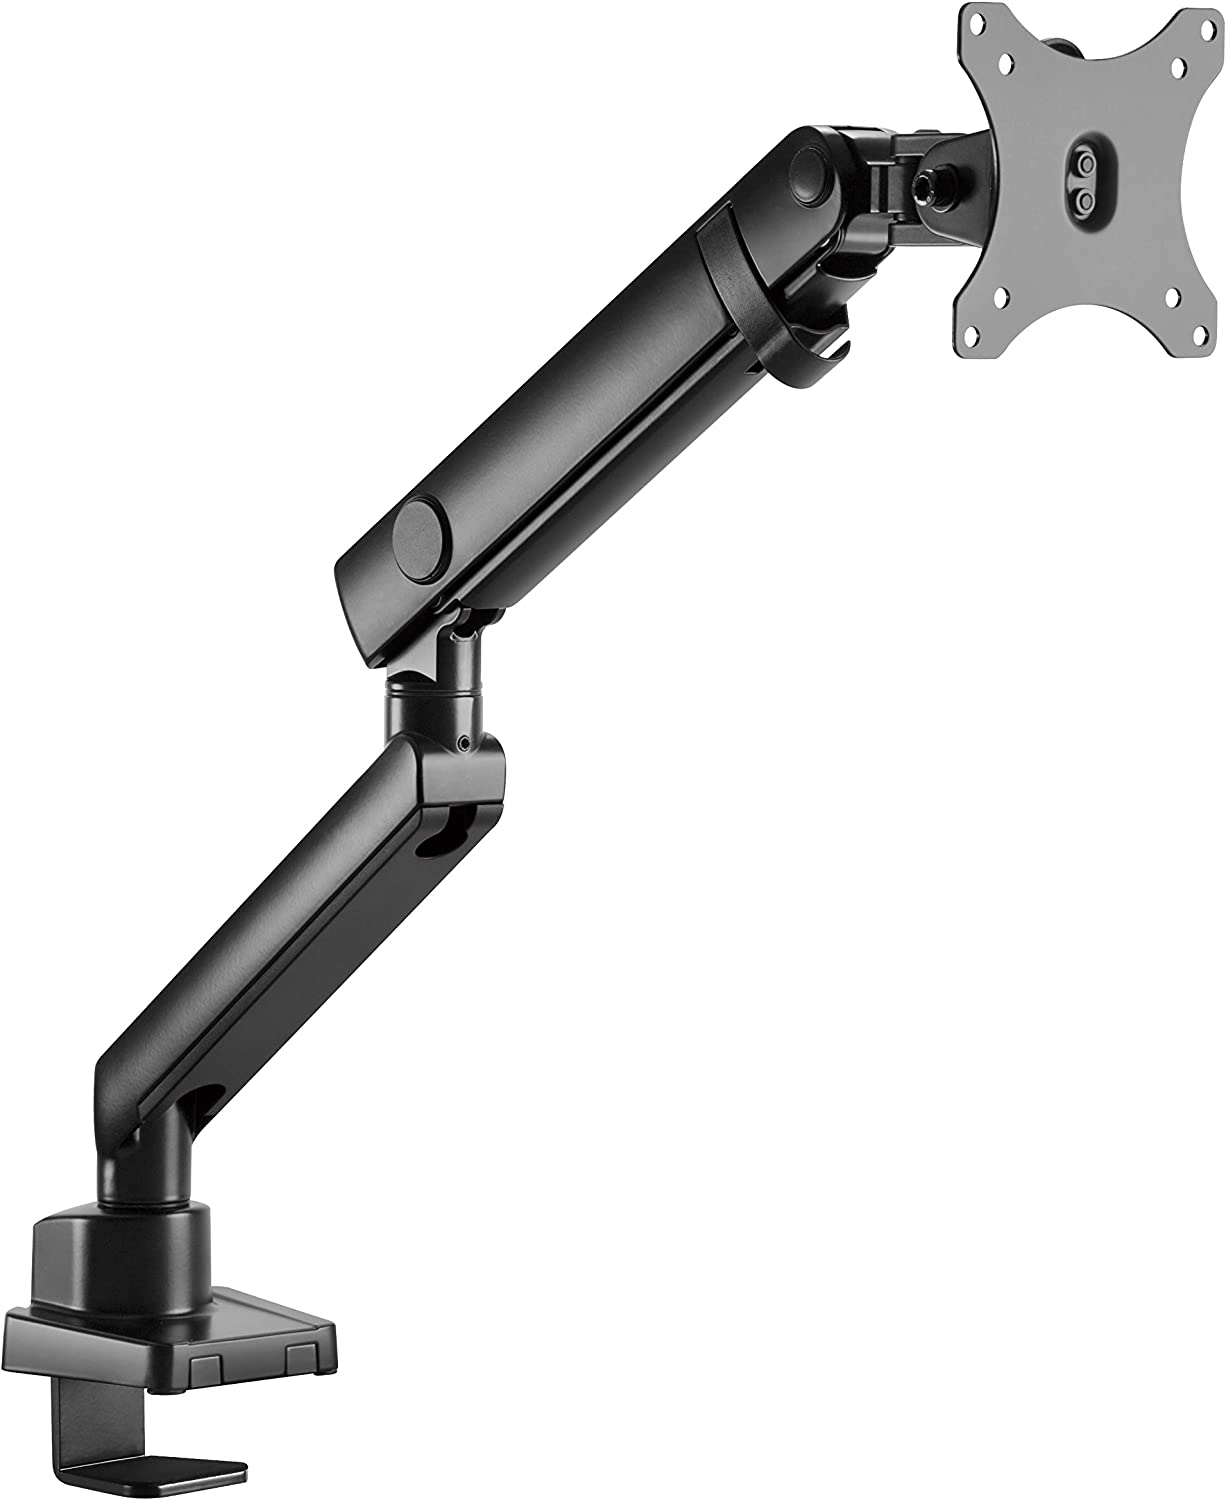 Amer Mounts | LED LCD Monitor Arm | Hydra Lift Articulating Arm | Clamp and Grommet Base | (Single 17